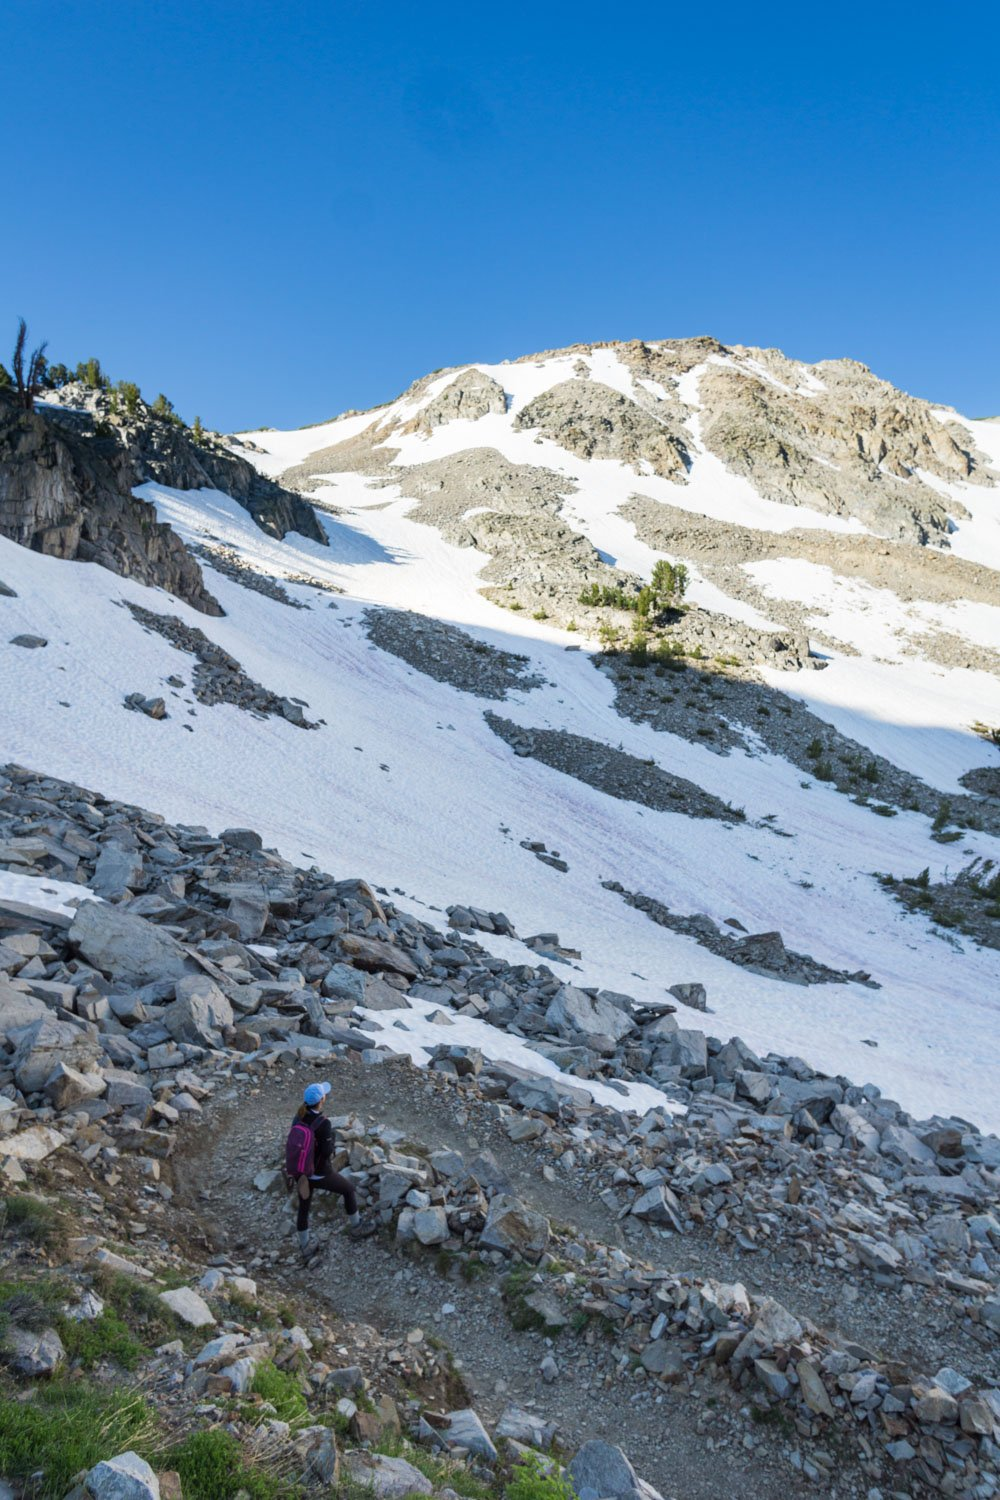 hiking up the switchbacks to duck pass